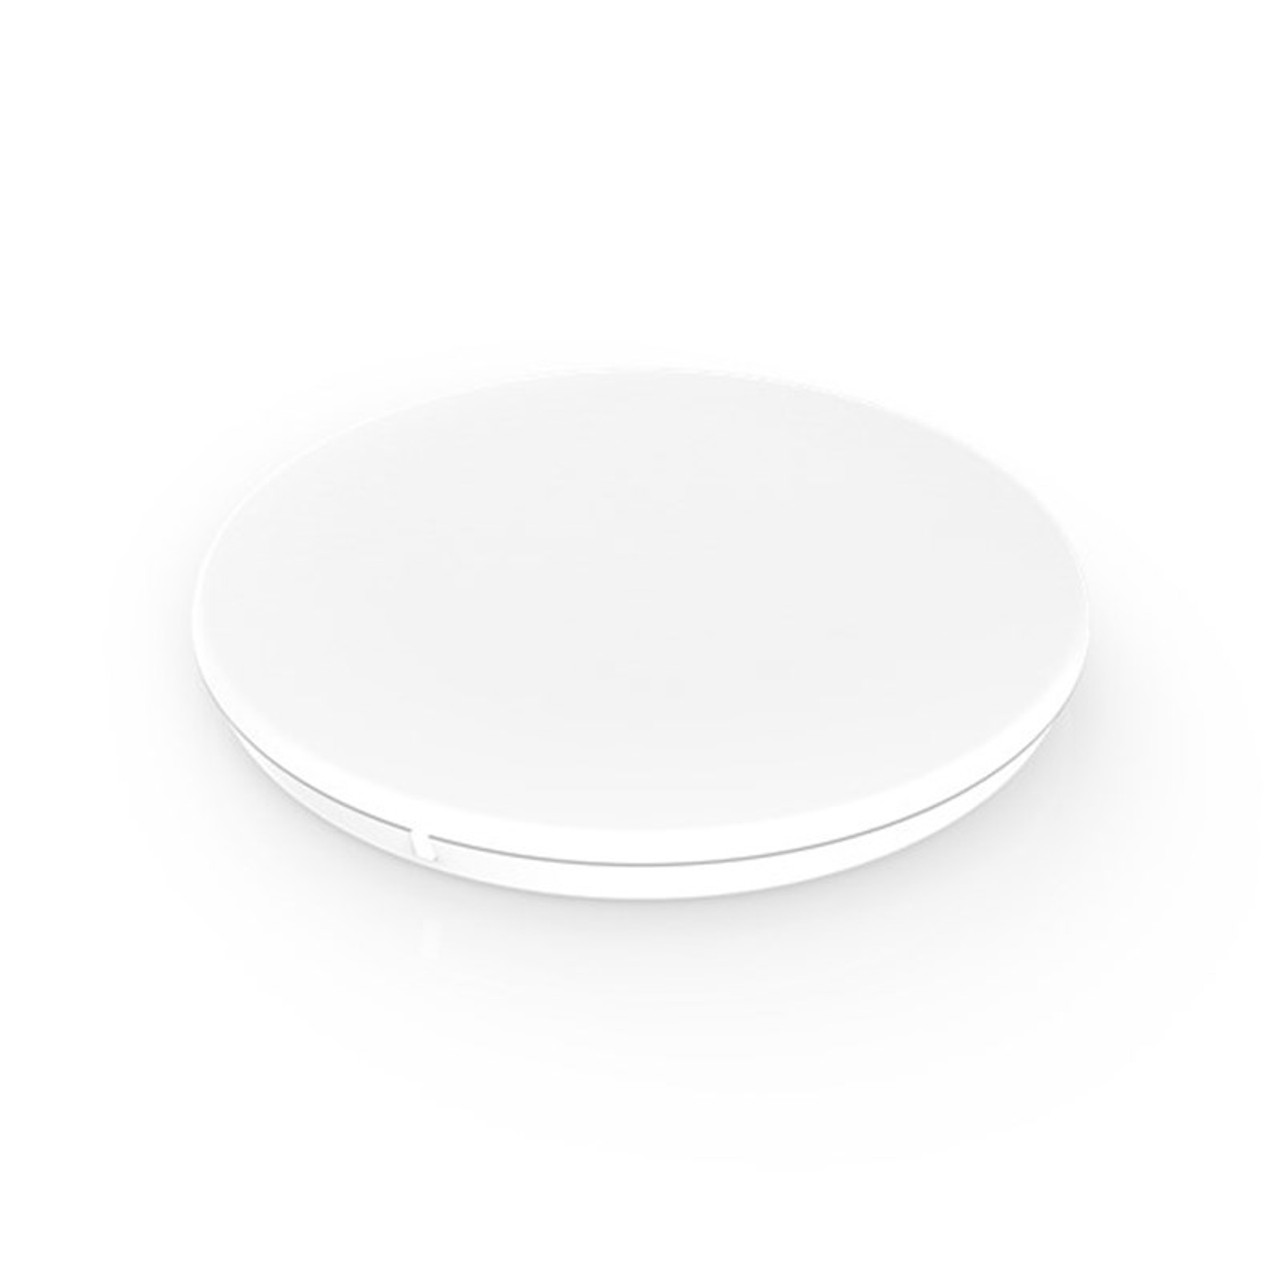 Image for Asus Wireless Power Mate 15W Wireless Qi Charger - White CX Computer Superstore